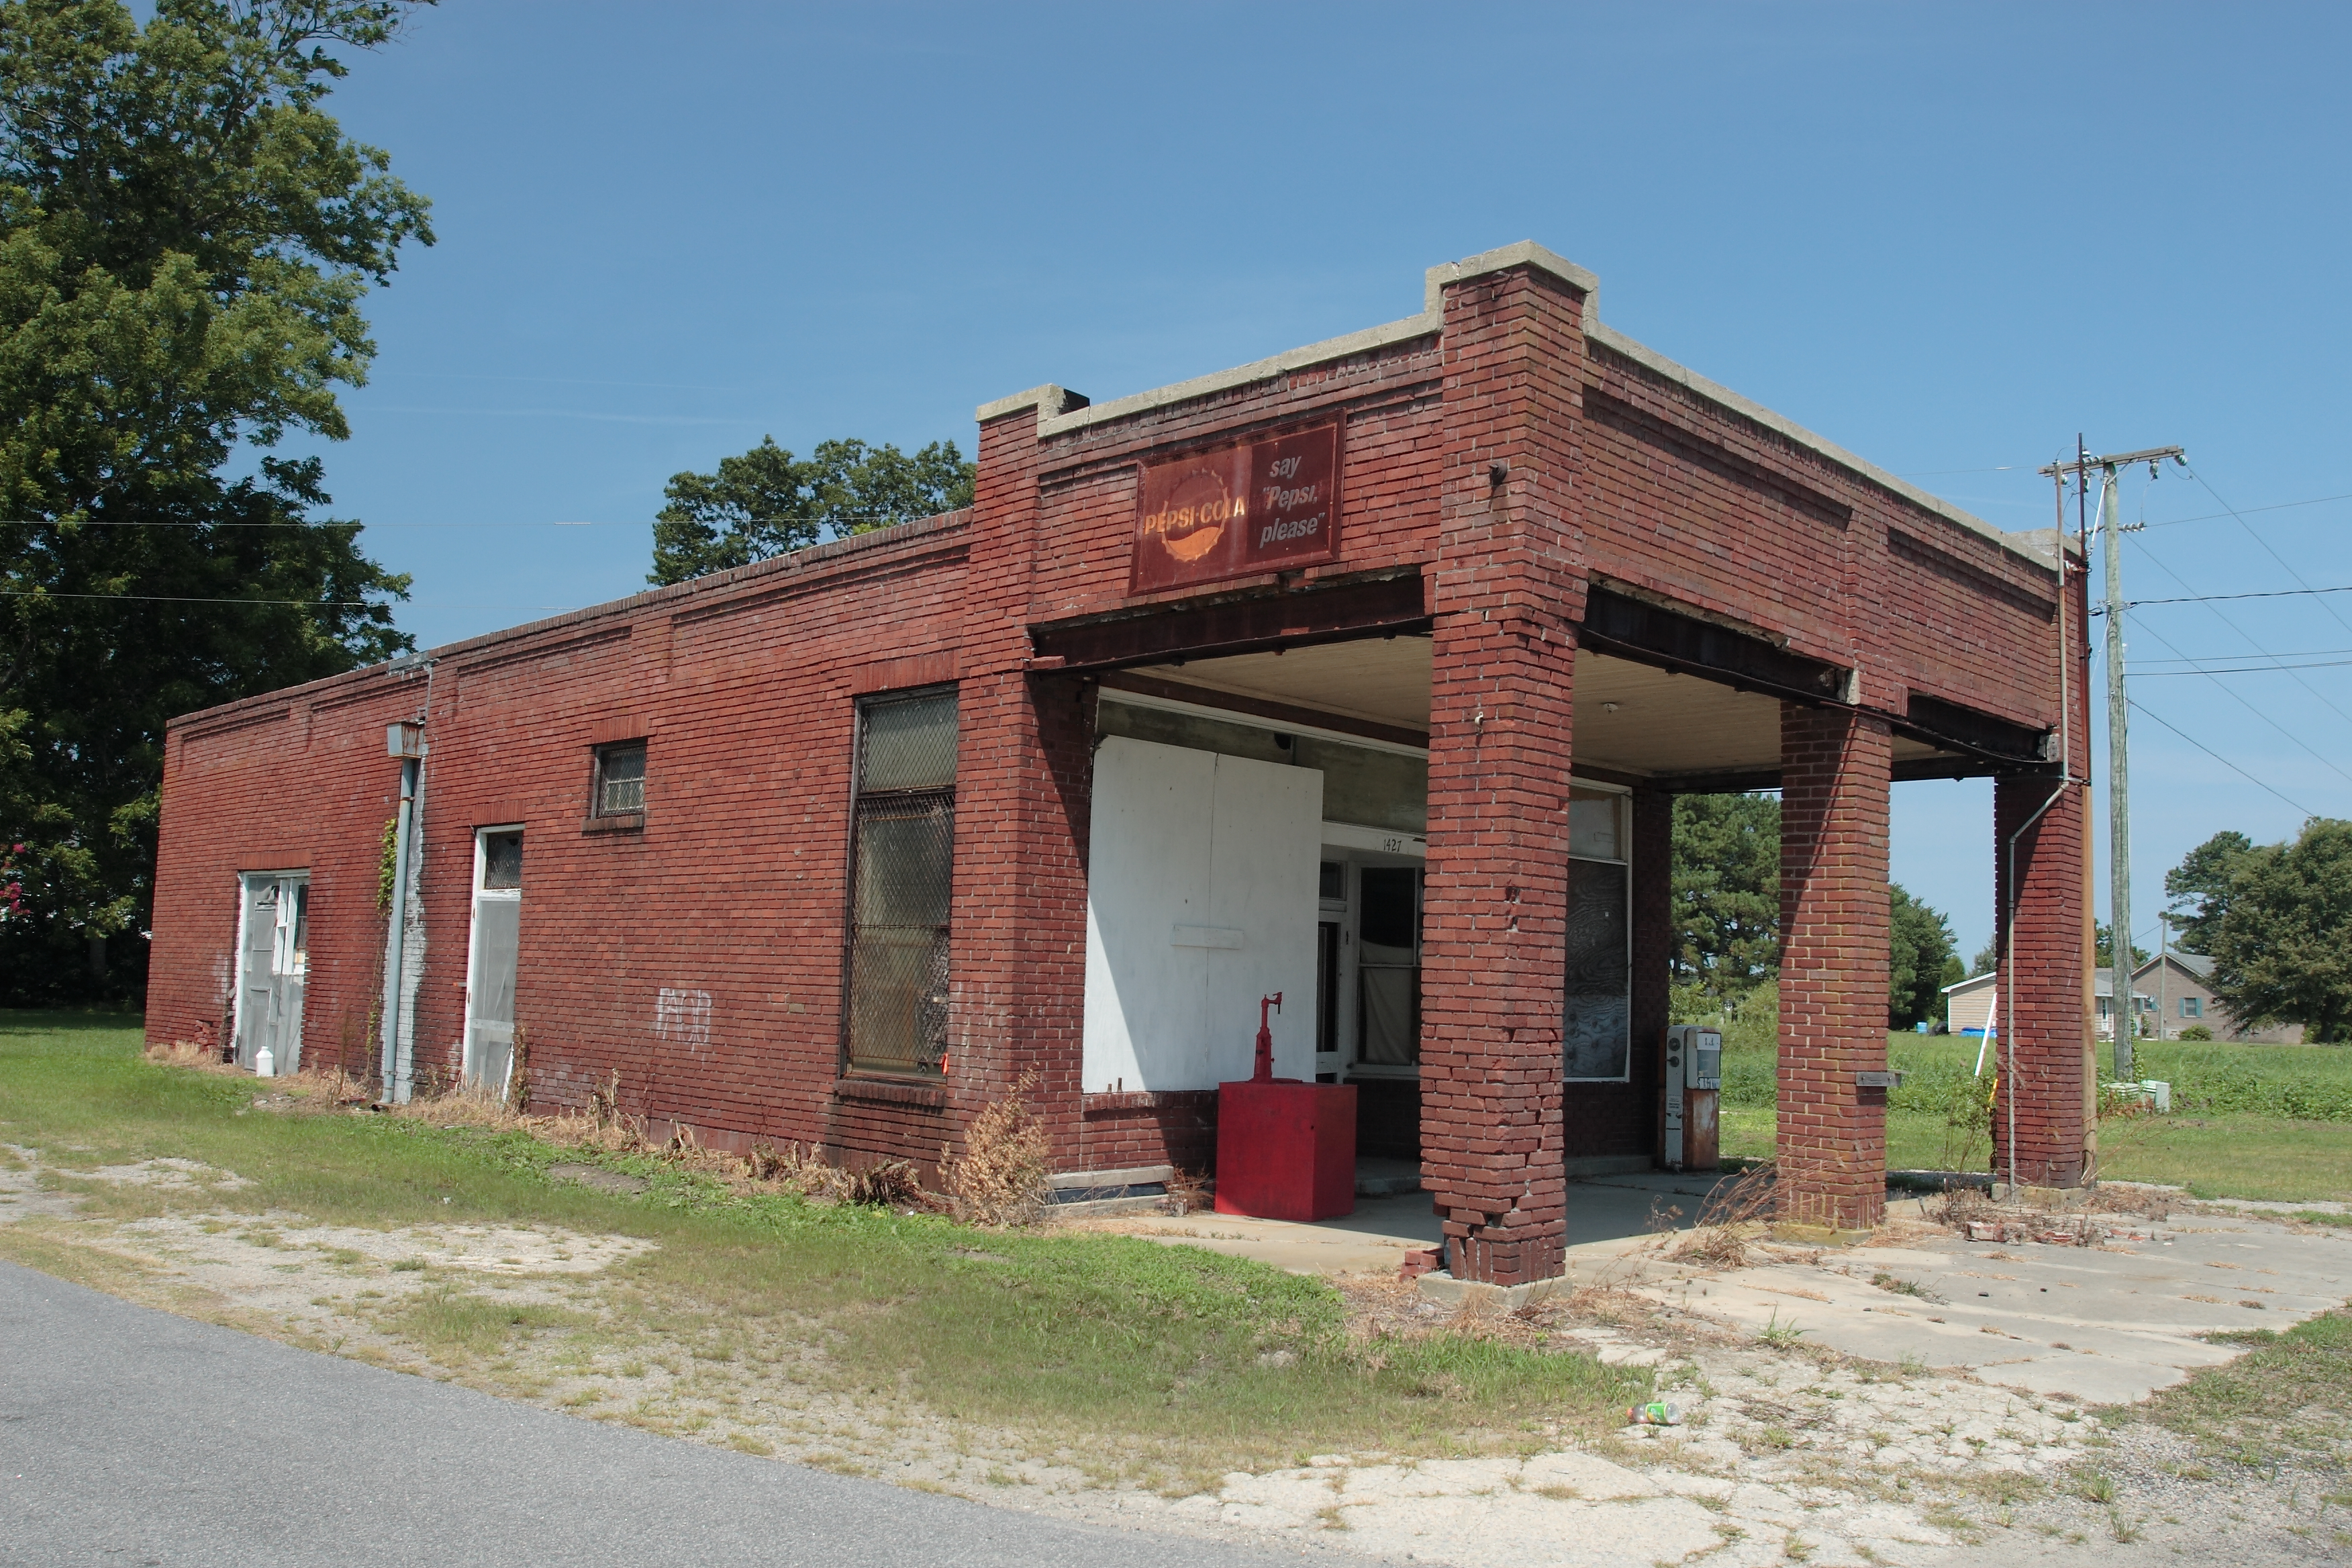 Building north carolina and abandoned on pinterest for Historical buildings in north carolina